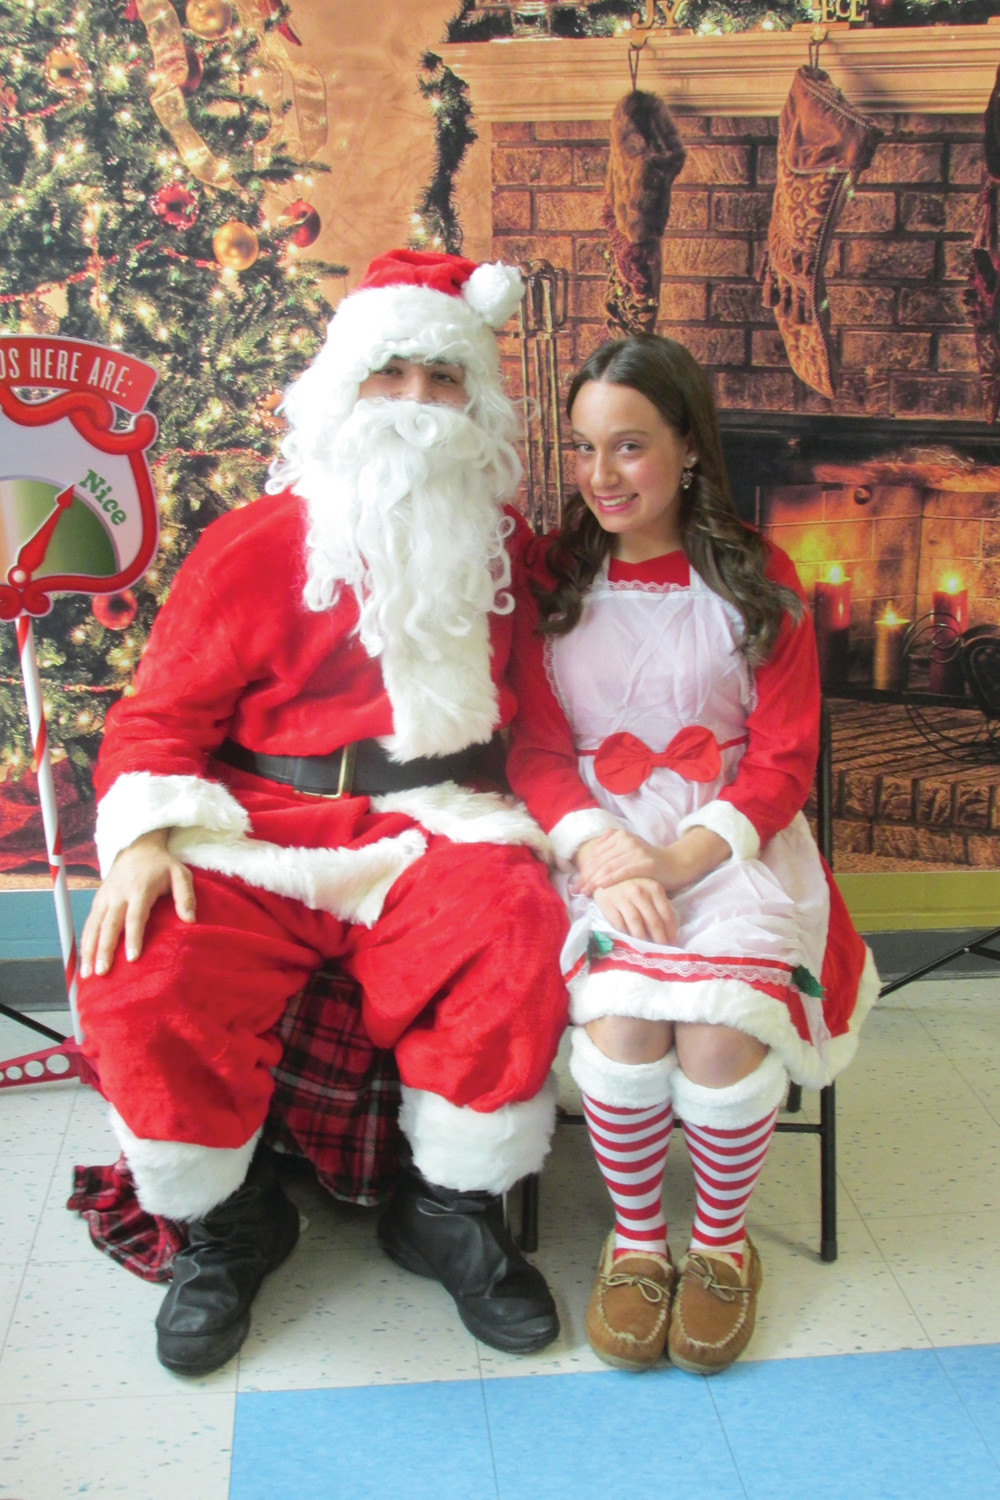 GRAND GUEST: In keeping with tradition, Santa Claus will make a special visit to Johnston Saturday for the 8th Annual JHS PTSO Holly Fair that will run from 9 a.m. to 4 p.m. inside the school cafeteria.